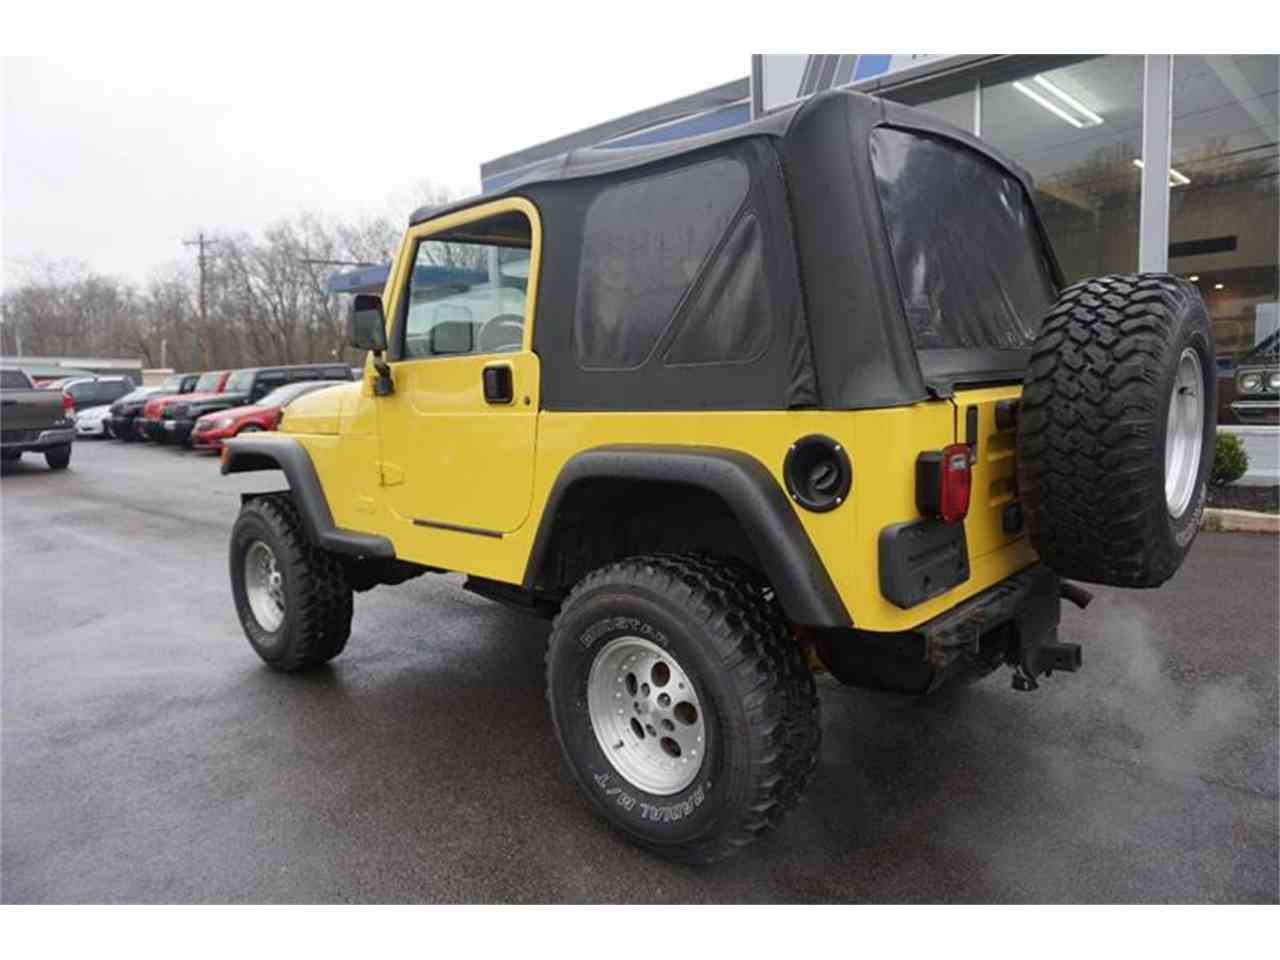 Large Picture of 2000 Jeep Wrangler located in Ohio - $6,995.00 Offered by Cincinnati Auto Wholesale - MBLA